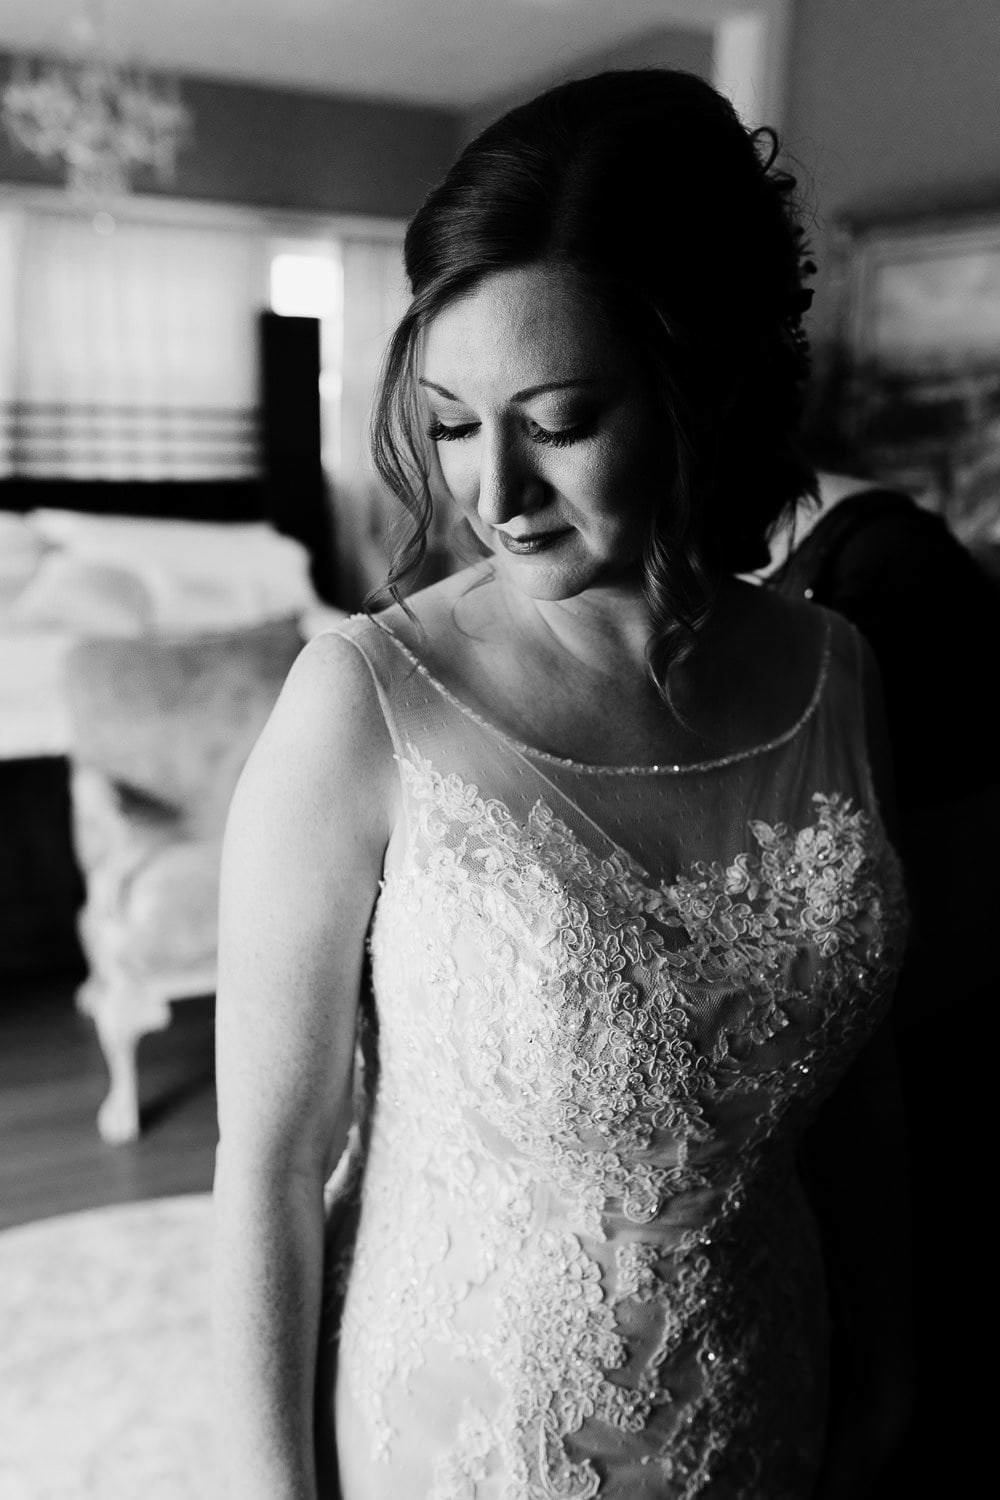 The Manor House Intimate Wedding | Cliff + Amy| ROCKY MOUNTAIN WEDDING PHOTOGRAPHY| Justyna E Butler Photography|Colorado Wedding Photographer | Colorado Mountain Wedding Photography